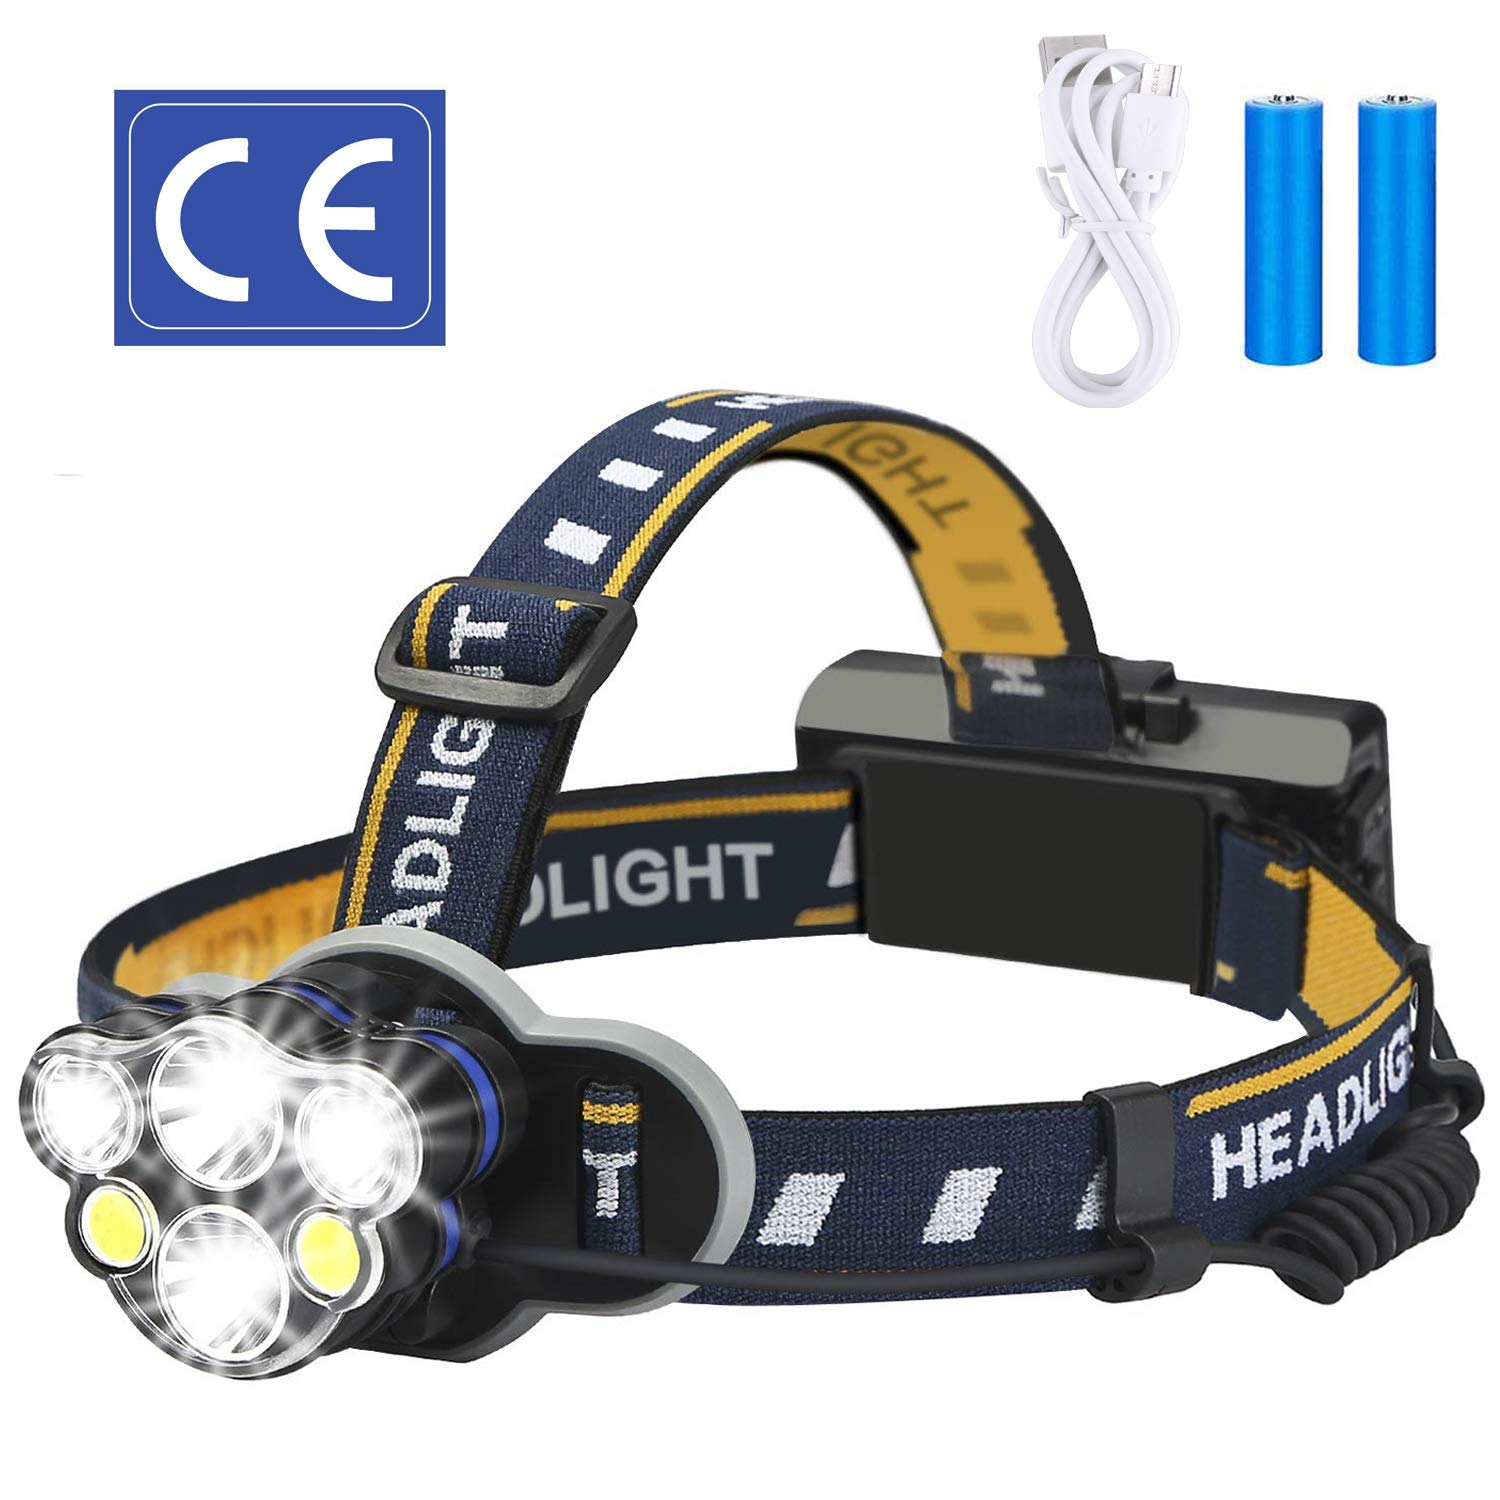 ELMCHEE Rechargeable headlamp, 12000 Lumen 6 LED 8 Modes 18650 USB Rechargeable Waterproof Flashlight Head Lights for Camping, Hiking, Outdoors by ELMCHEE